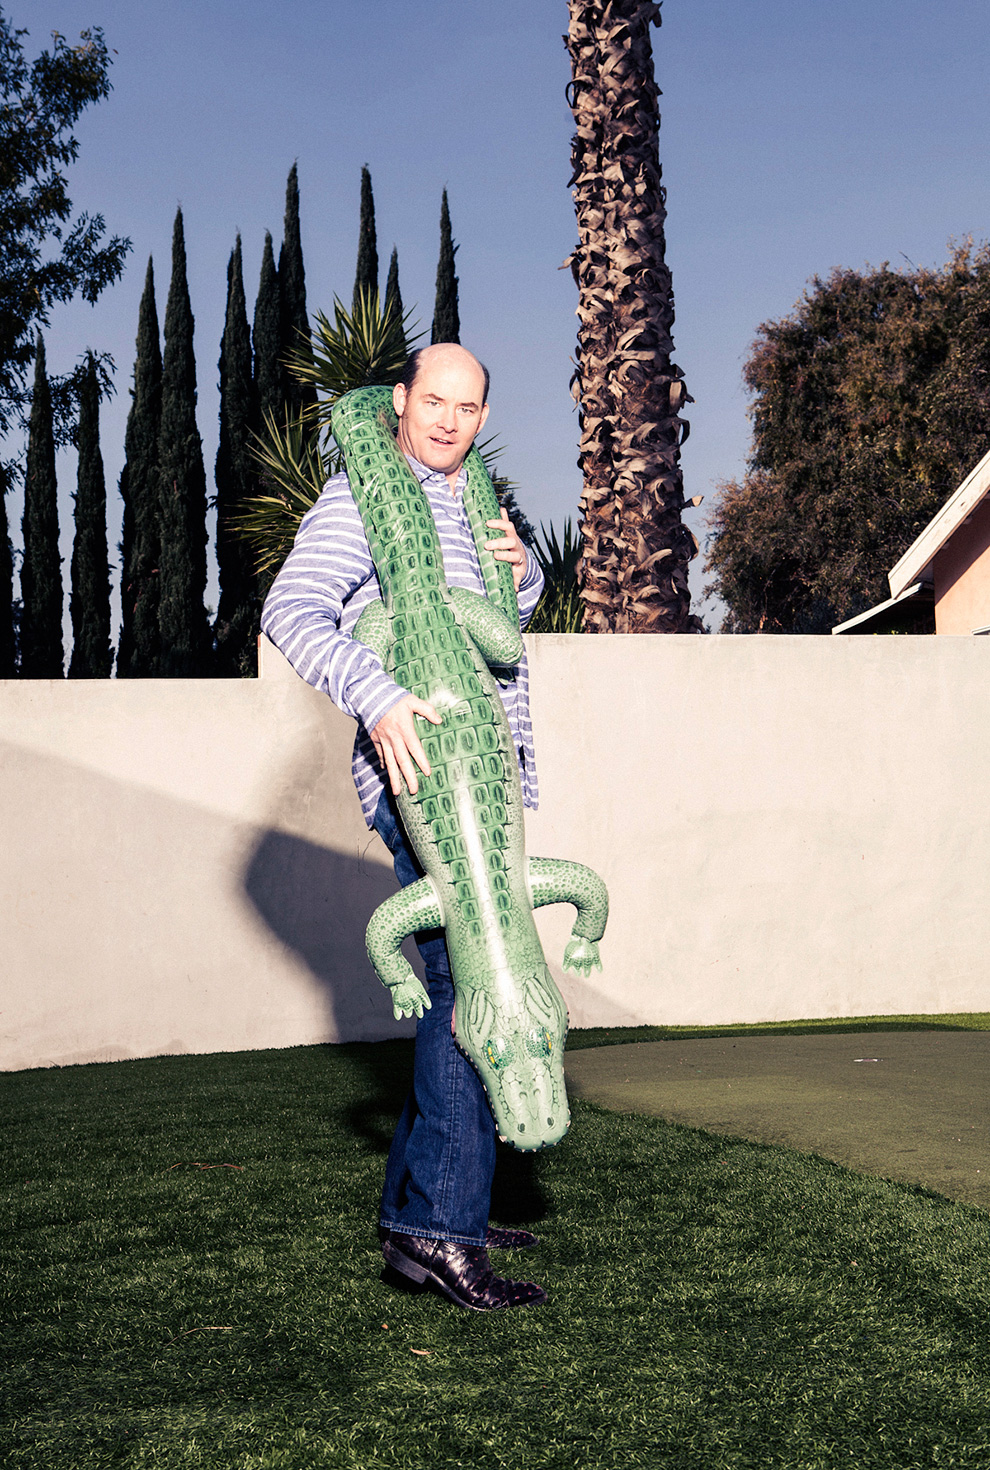 The David Koechner Guide To Achieving Modest, Lasting Success As A Working Comedic Actor, Eventually